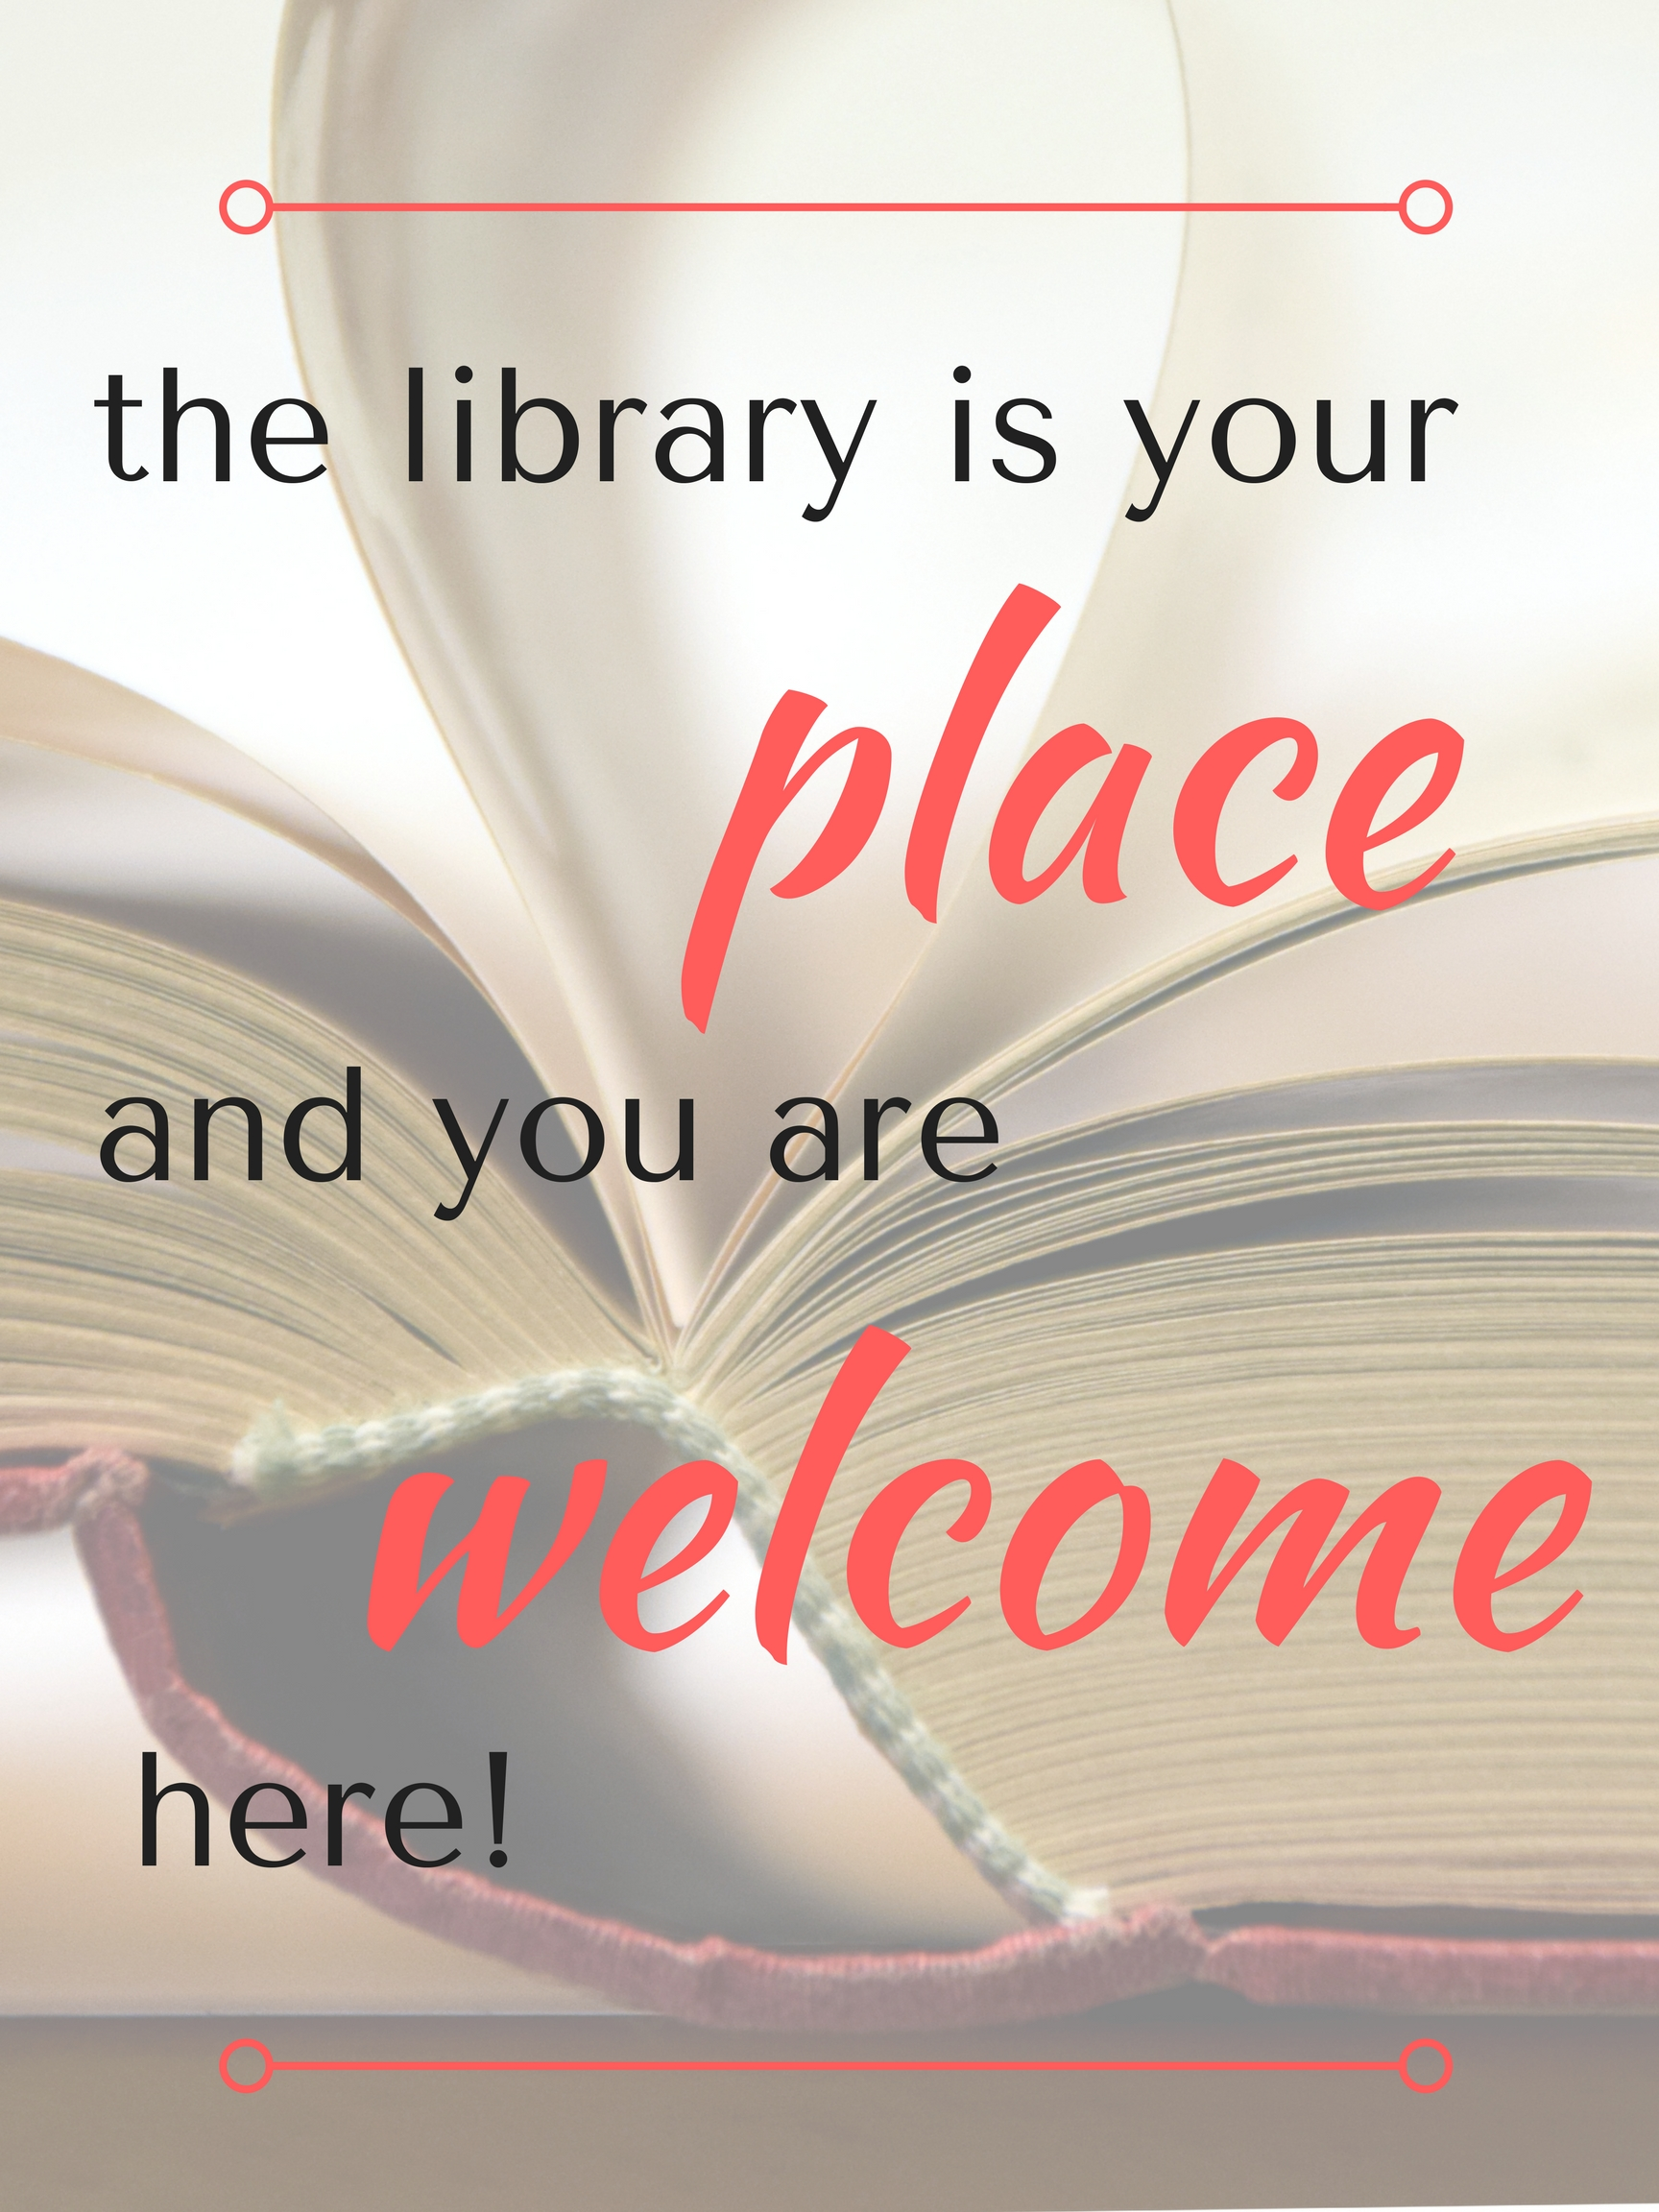 the library is your place and you are welcome here